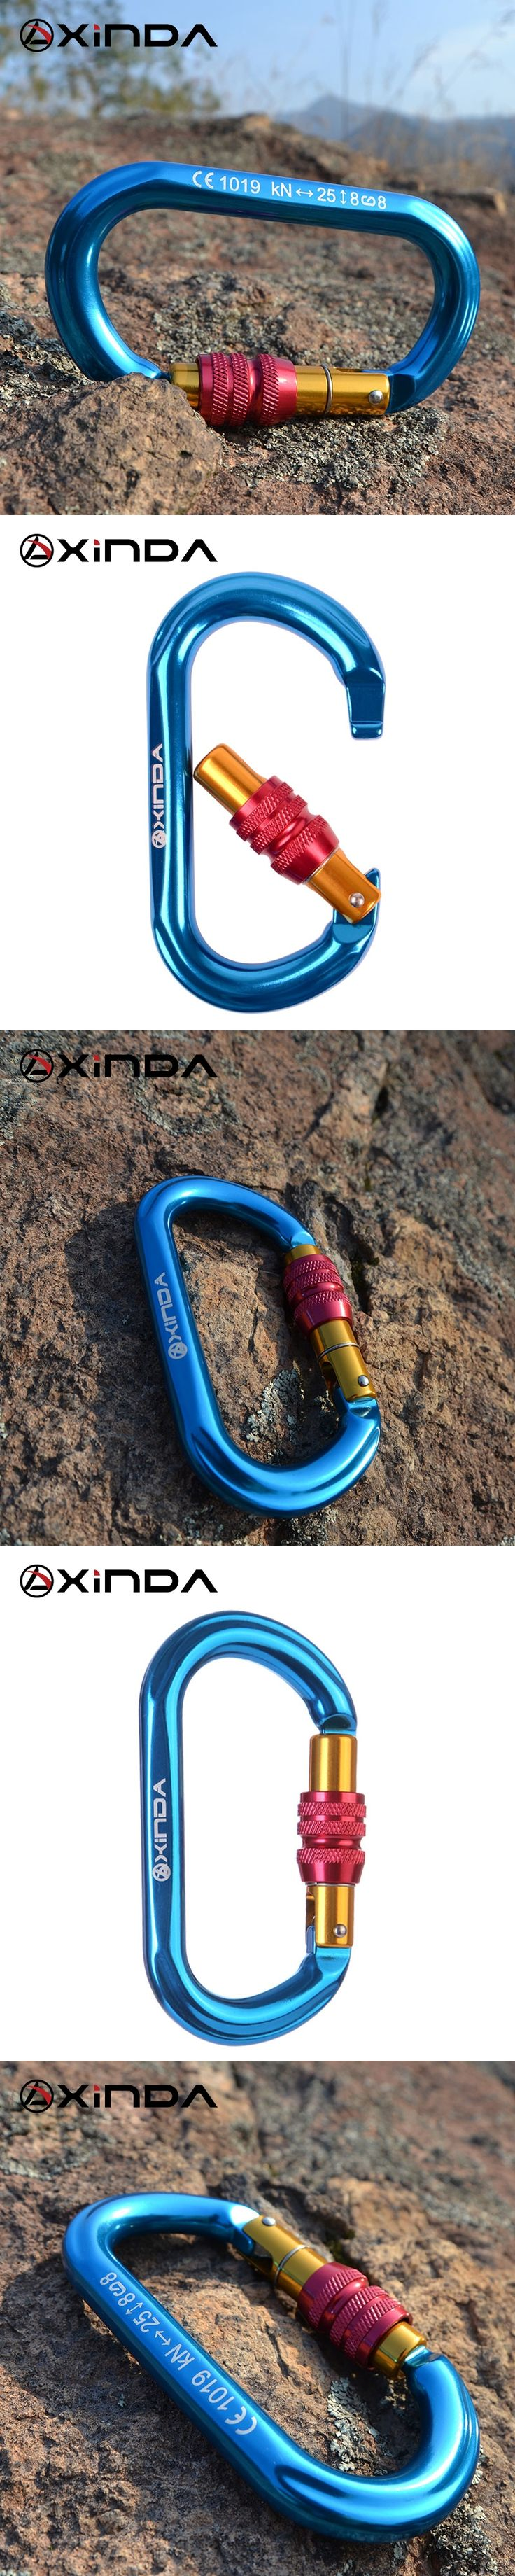 XINDA Professional Outdoor Rock Climbing 25KN Tension Safety Carabiner Buckle Lock Climbing Rock Climbing Equipment Survival Kit